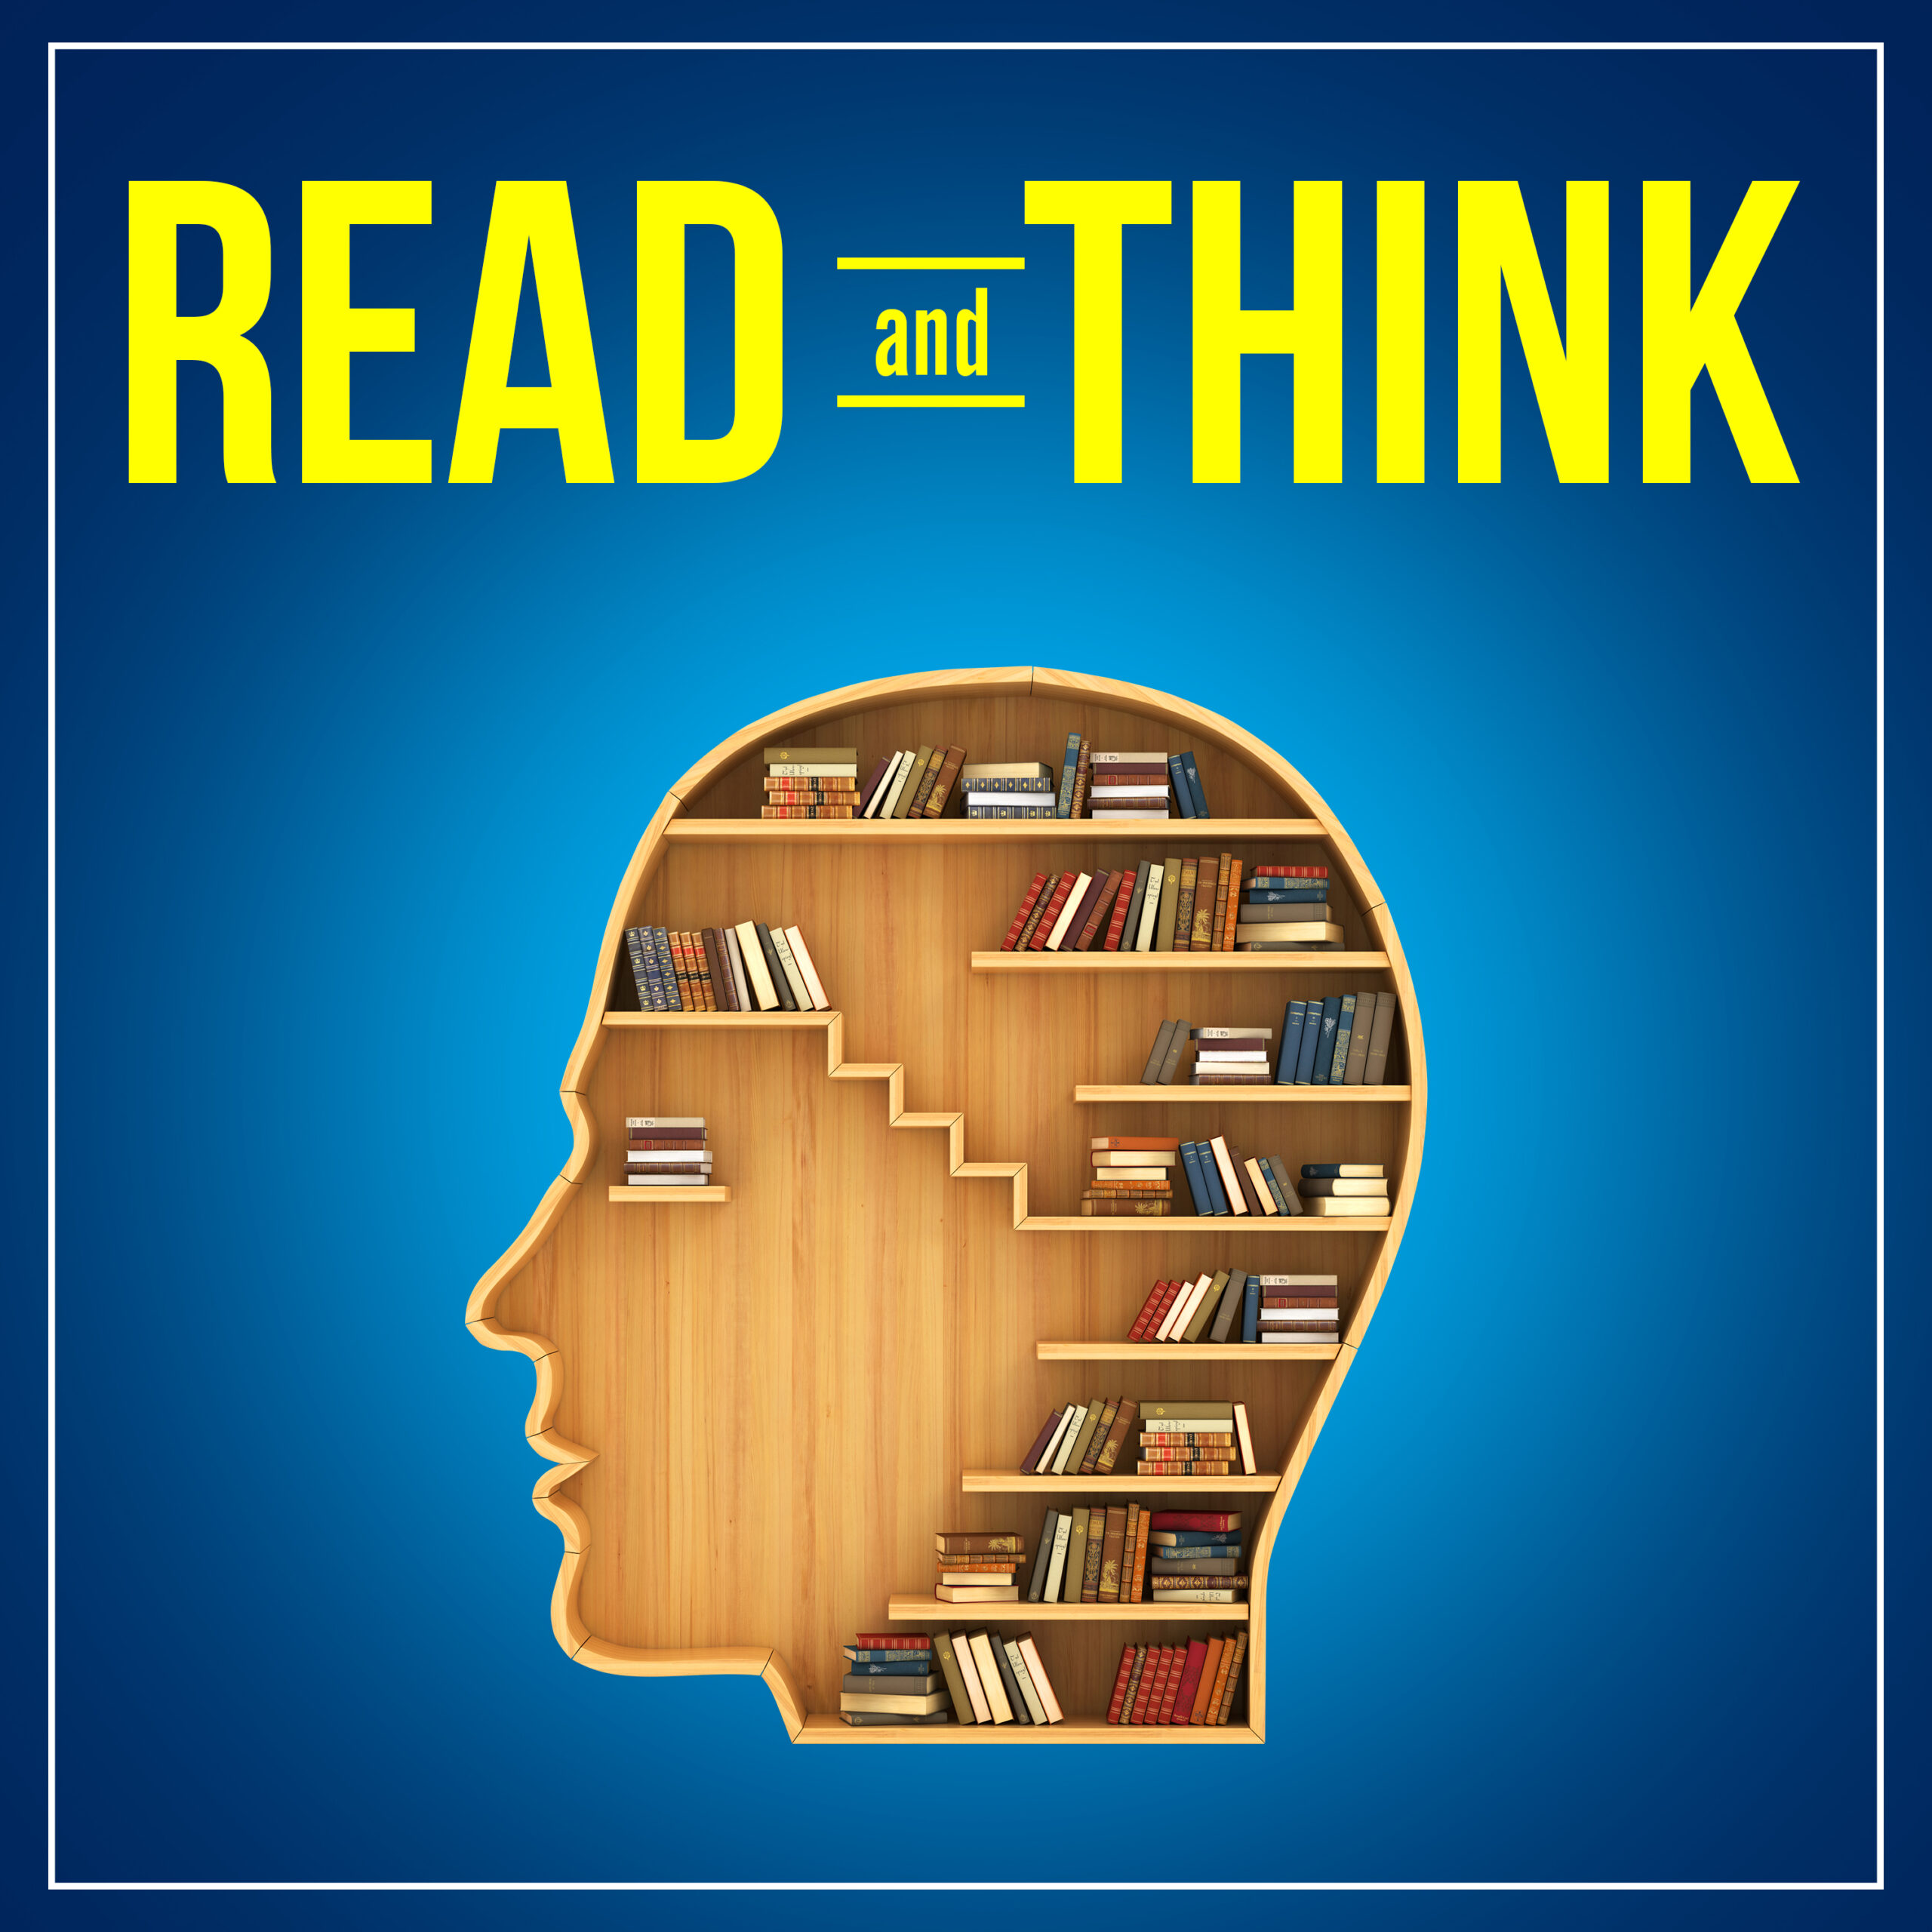 Read and Think Podcast: My New Show About Books